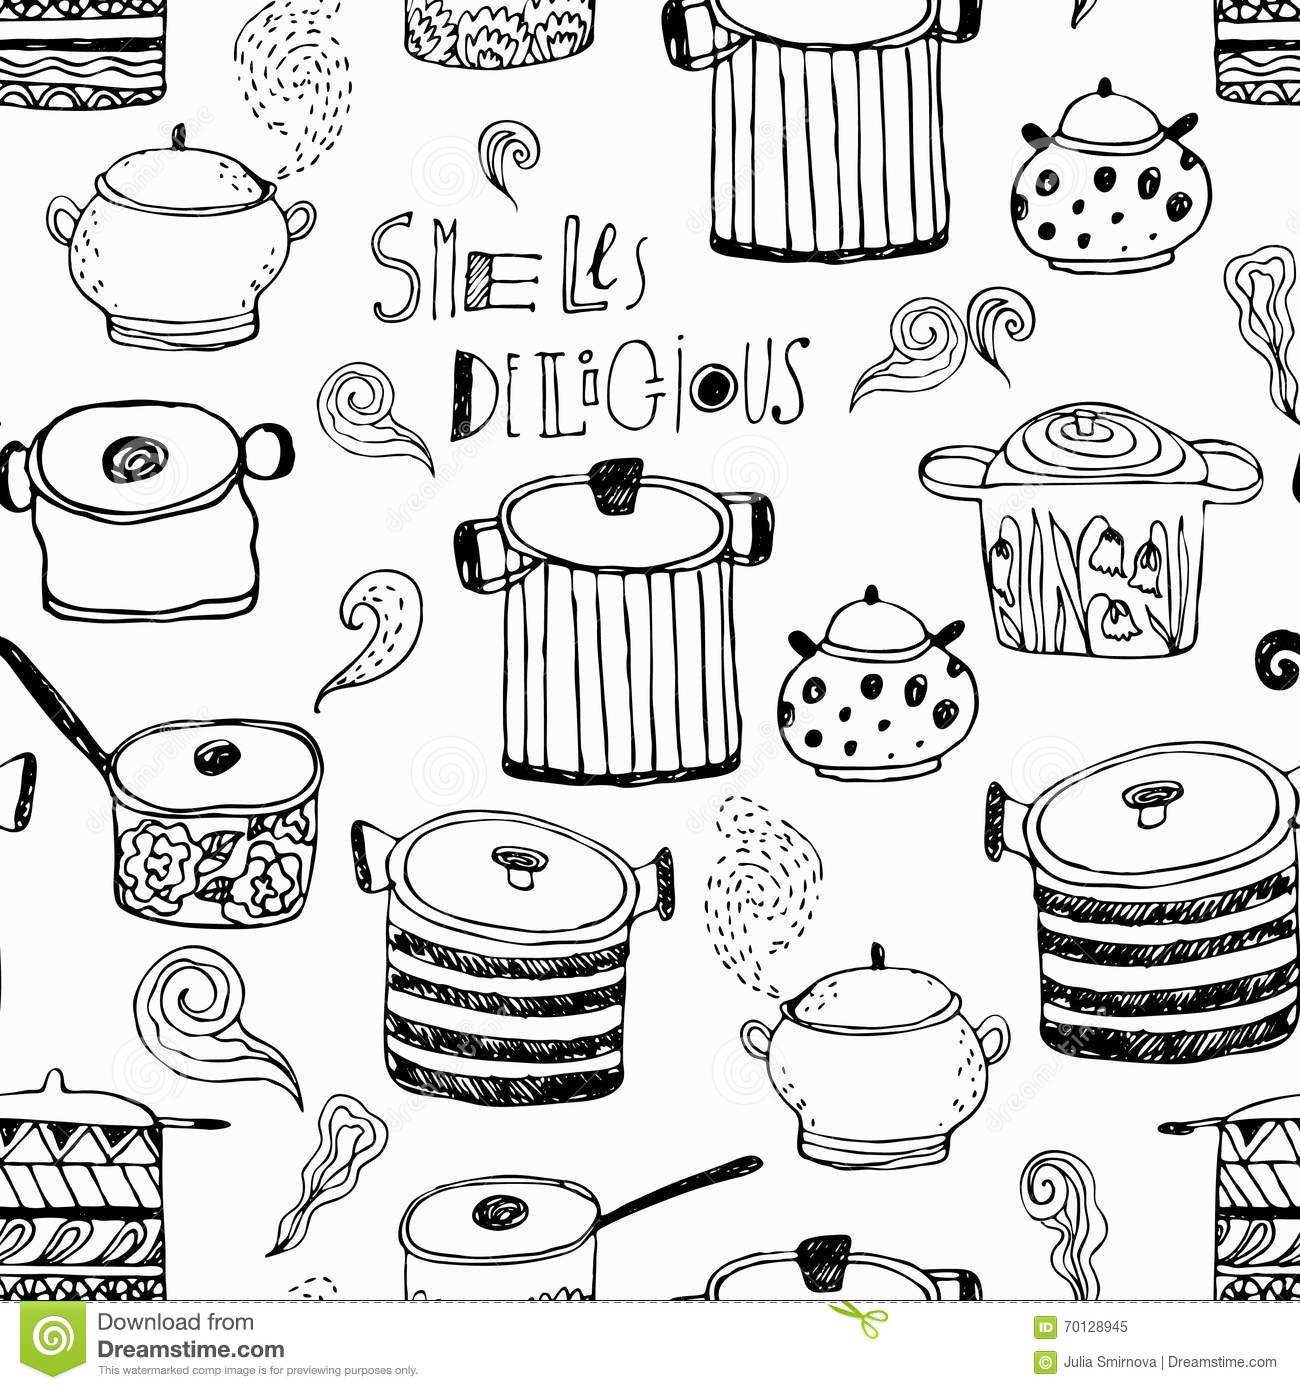 Scrapbook paper cooking - Cute Cooking Pots And Lettering Seamless Pattern